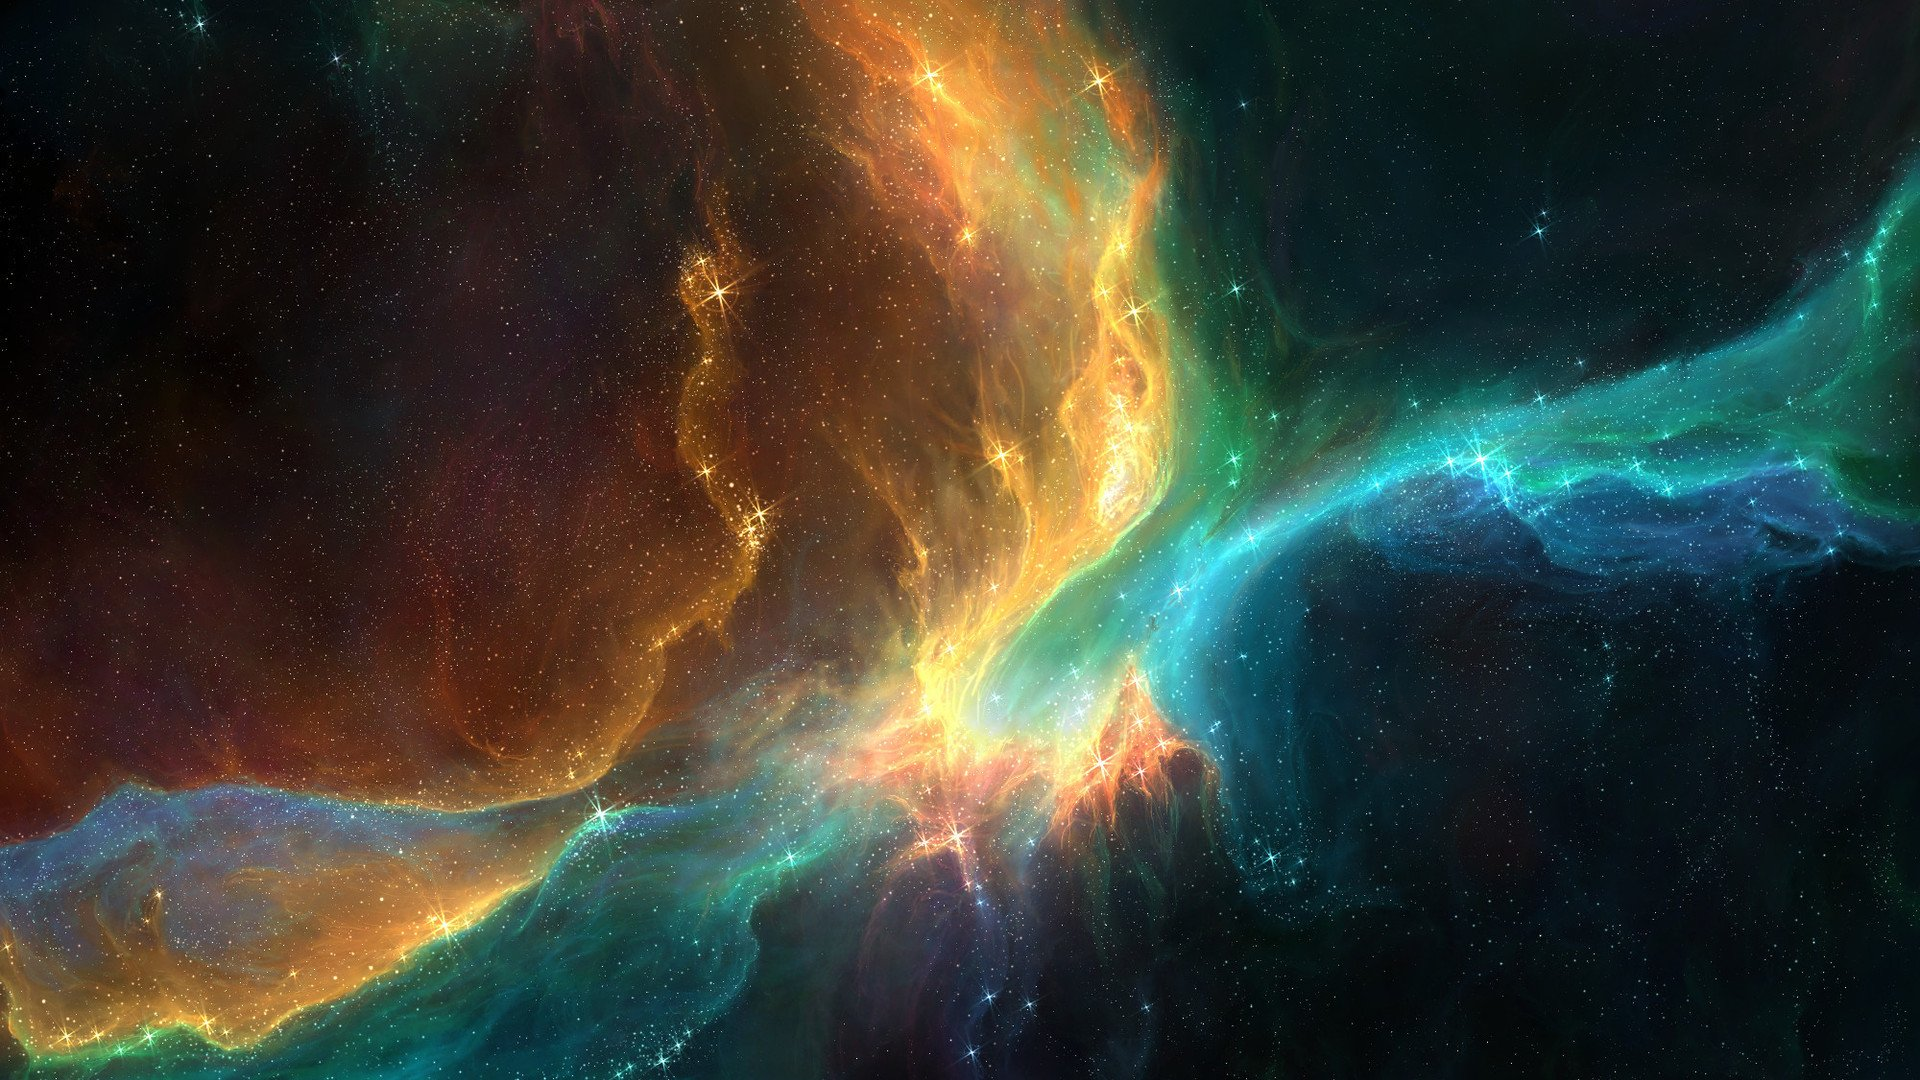 Outer Space Nebula 1920x1080